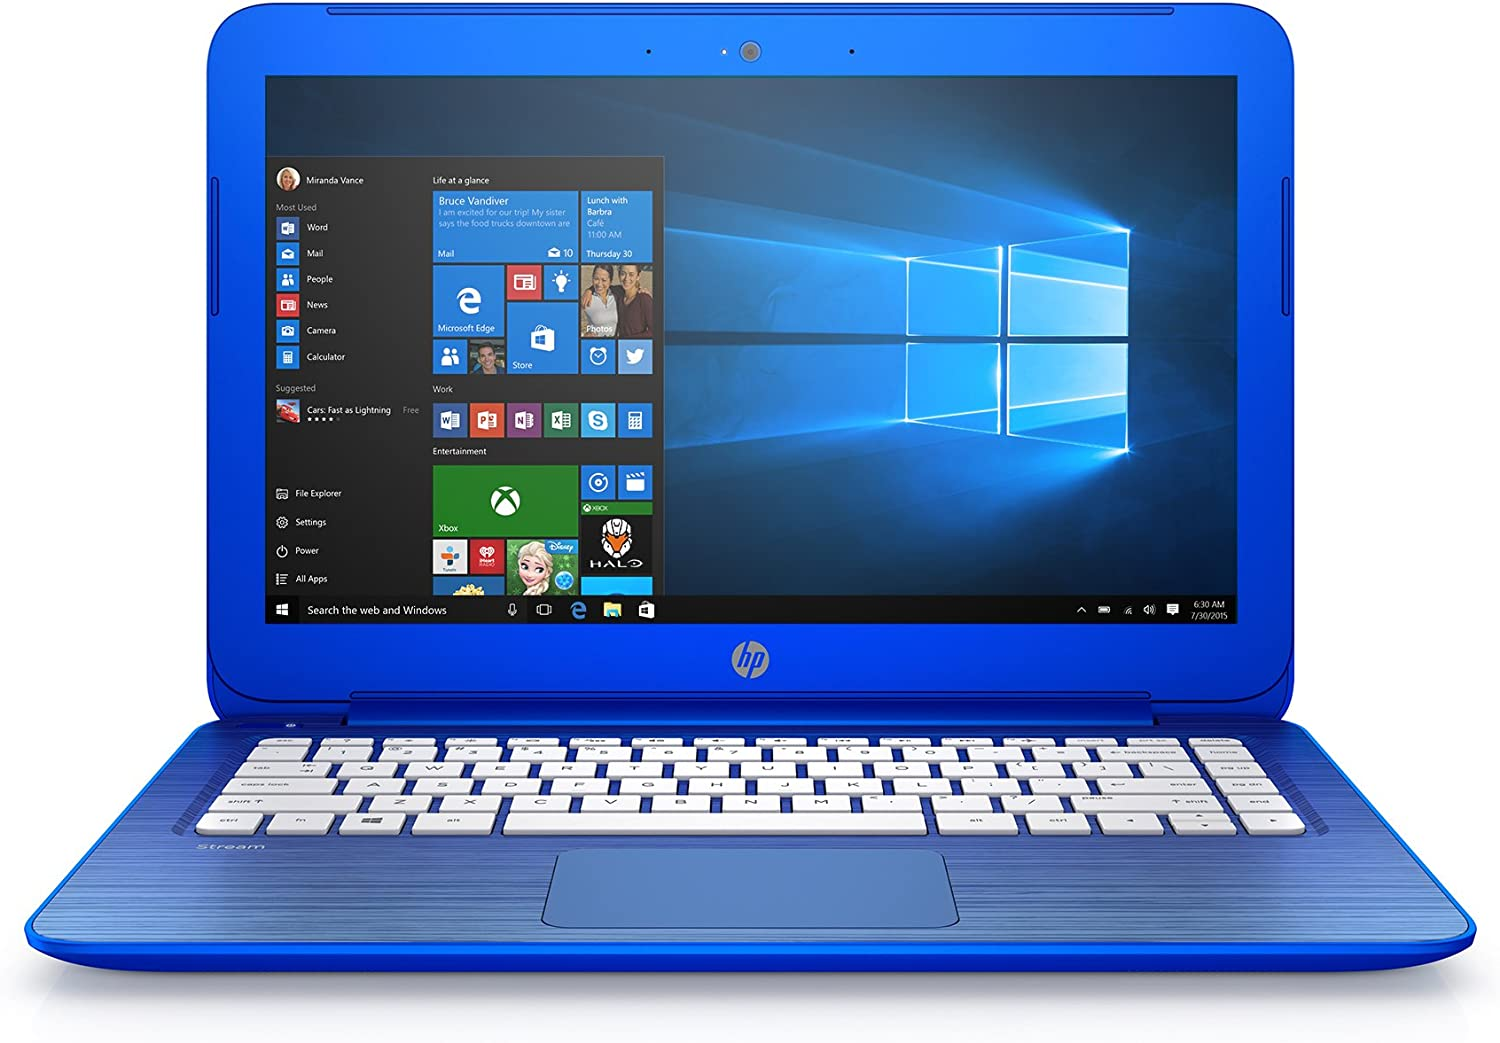 "2016 HP Stream 13.3"" HD Laptop - Intel Dual-Core N3050 up to 2.16GHz, 2GB RAM, 32GB eMMC, 1-yr Office 365 Included, DTS Studio Sound, WLAN, Bluetooth, Webcam, Windows 10"